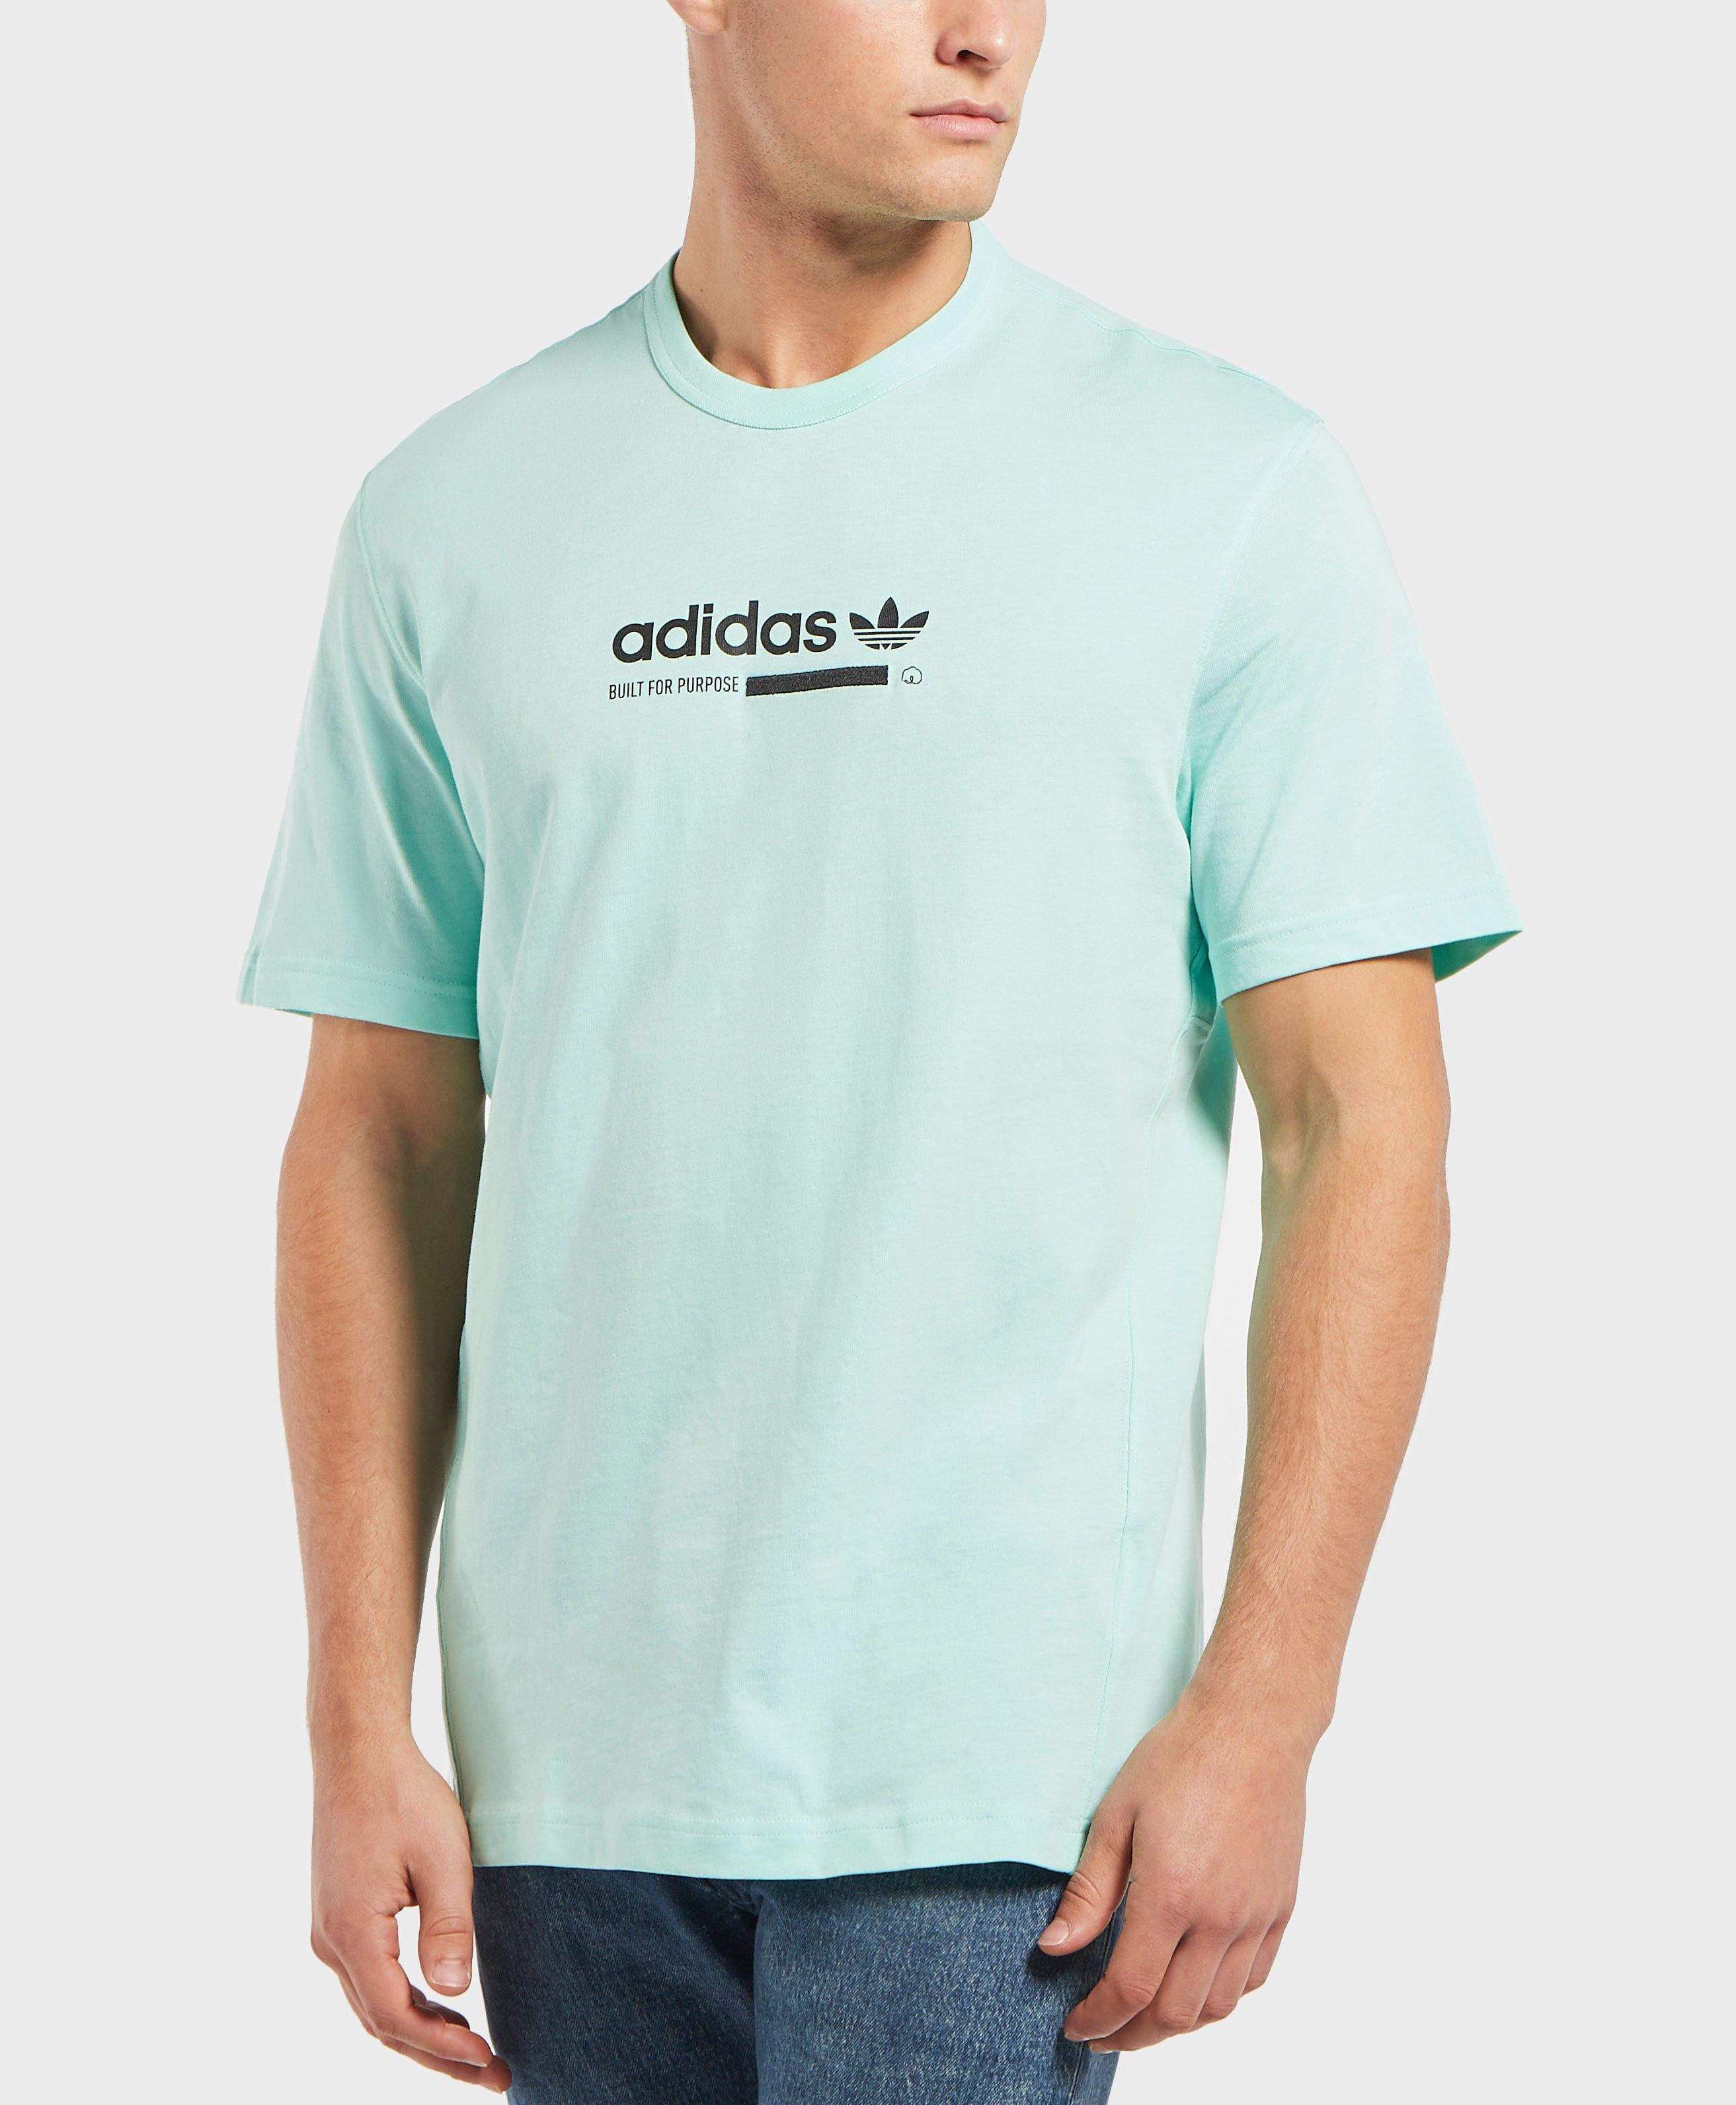 013ca6754 Adidas Originals Kaval Short Sleeve T-shirt in Blue for Men - Lyst